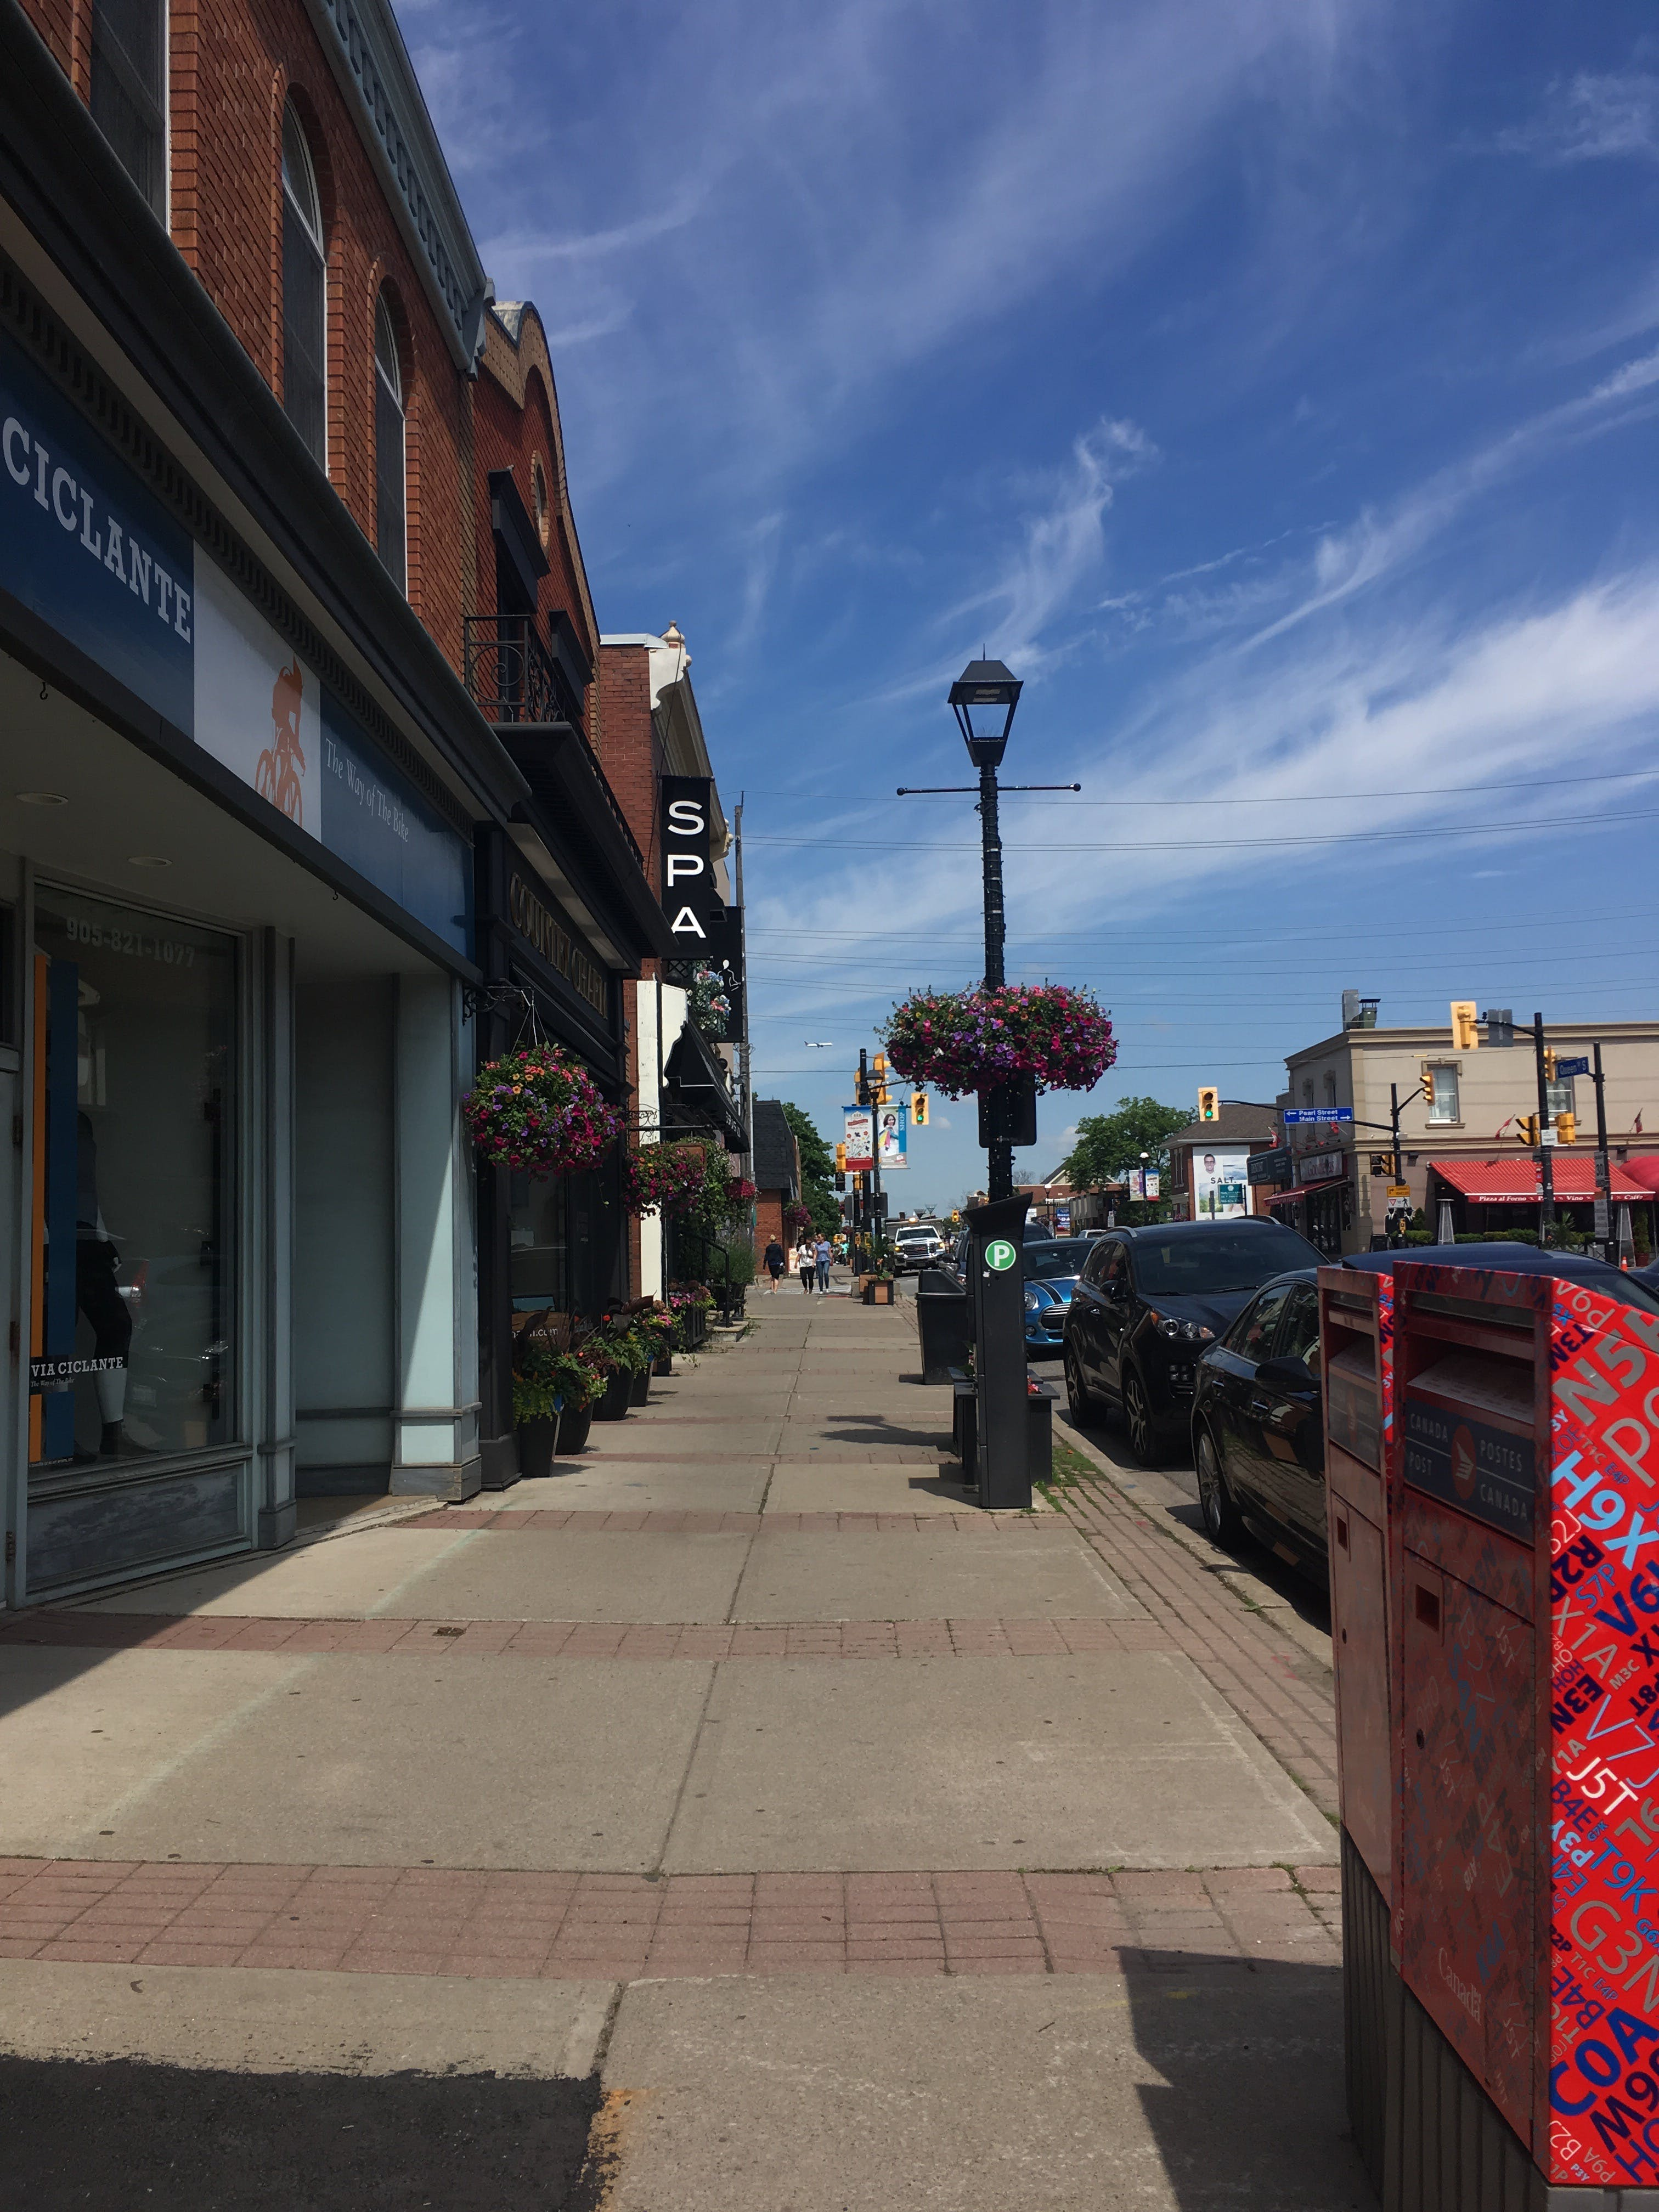 Main Street streetscape treatment (paving material, furniture, lights, and street landscaping) in Streetsville